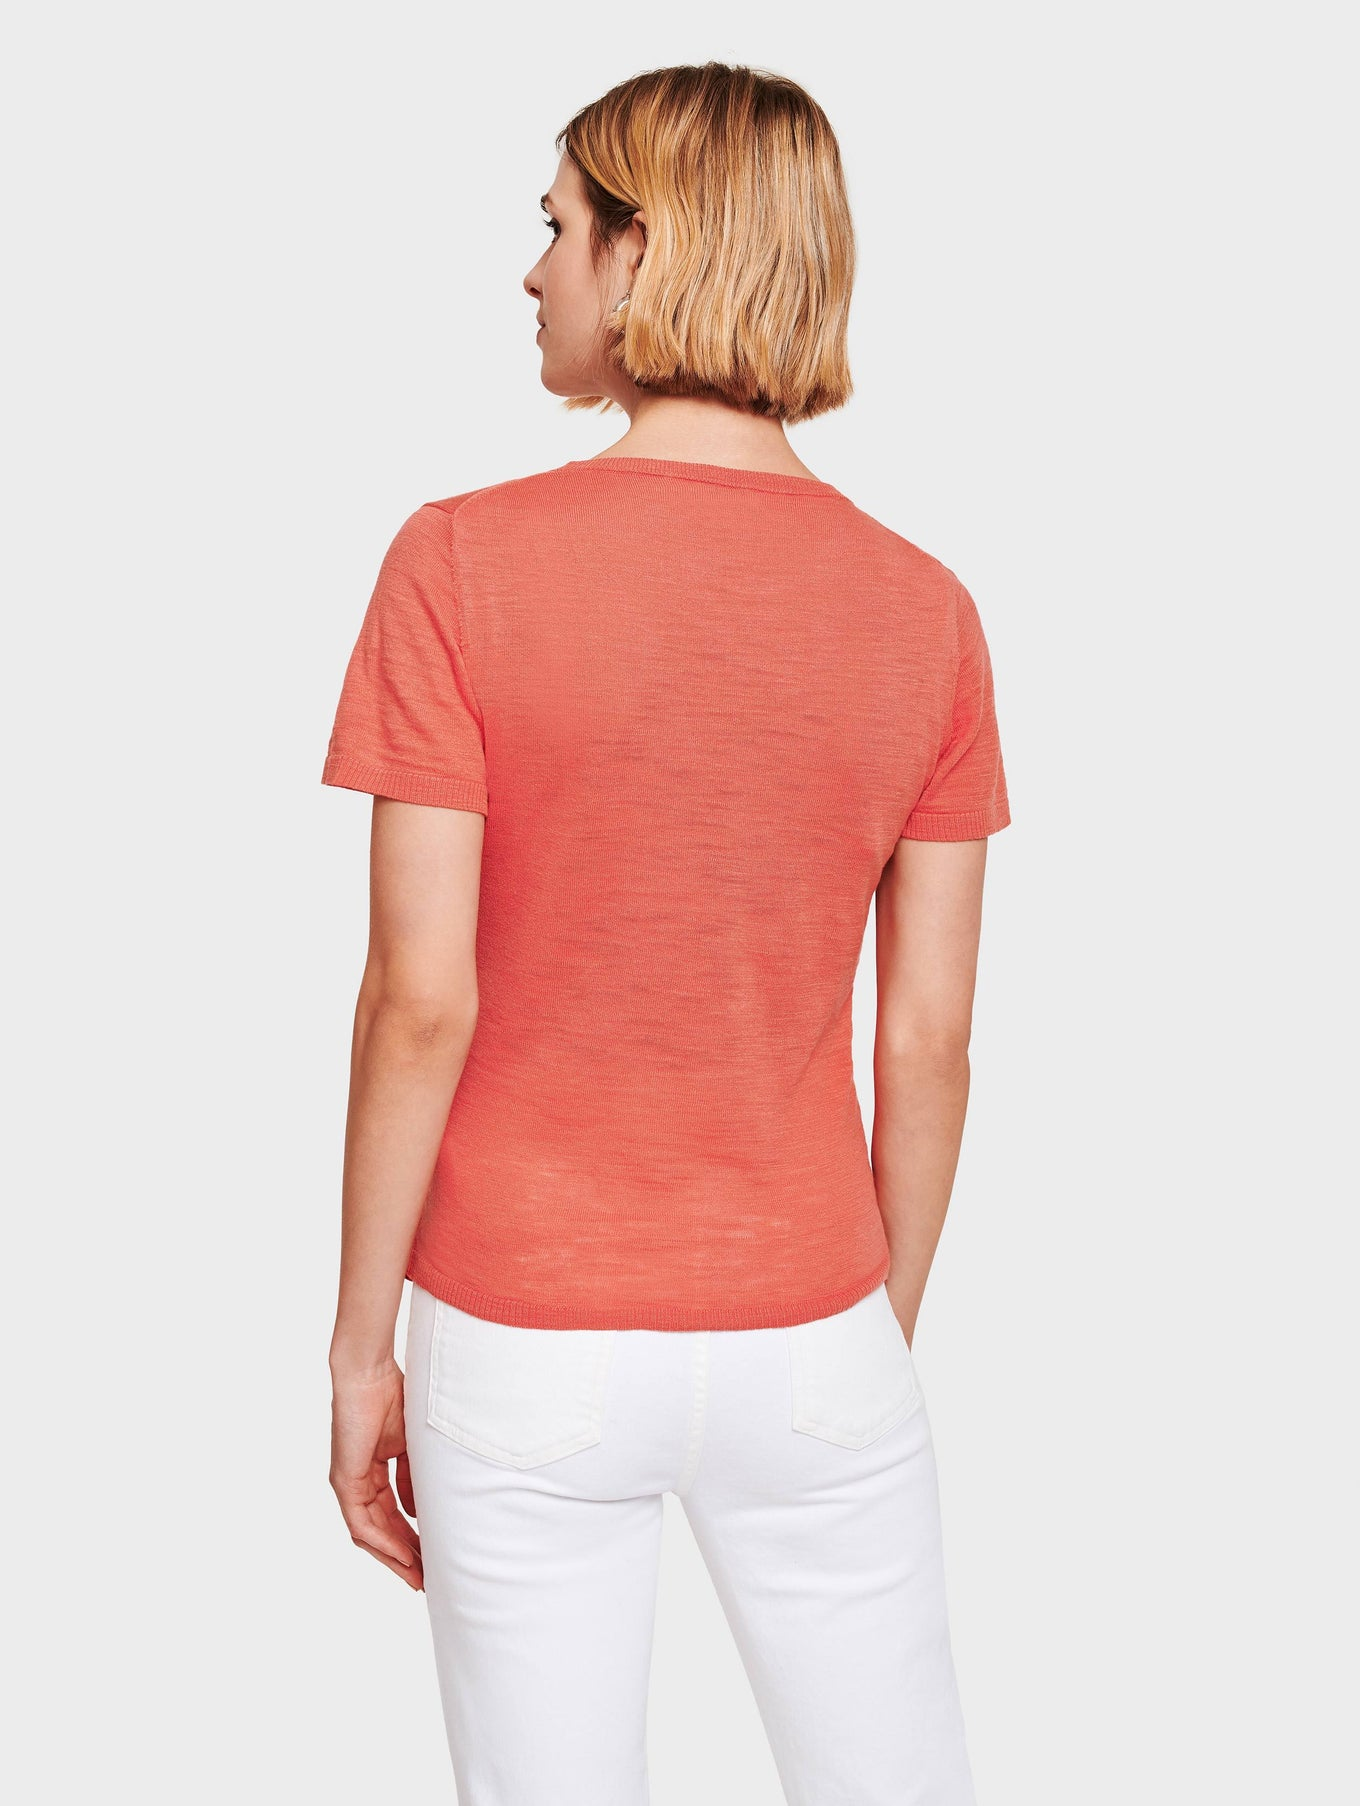 Cotton Slub Tie Front Tee - Rose - Image 3